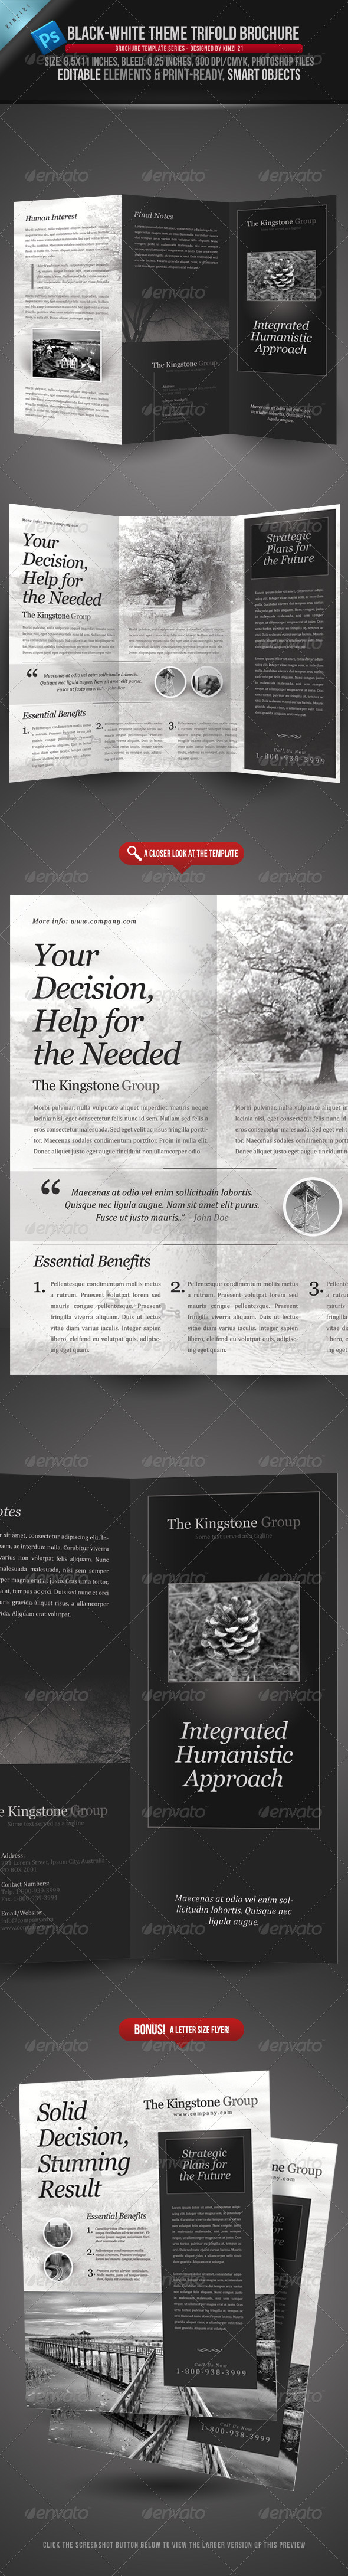 Black & White Theme Trifold Brochure Template - Corporate Brochures